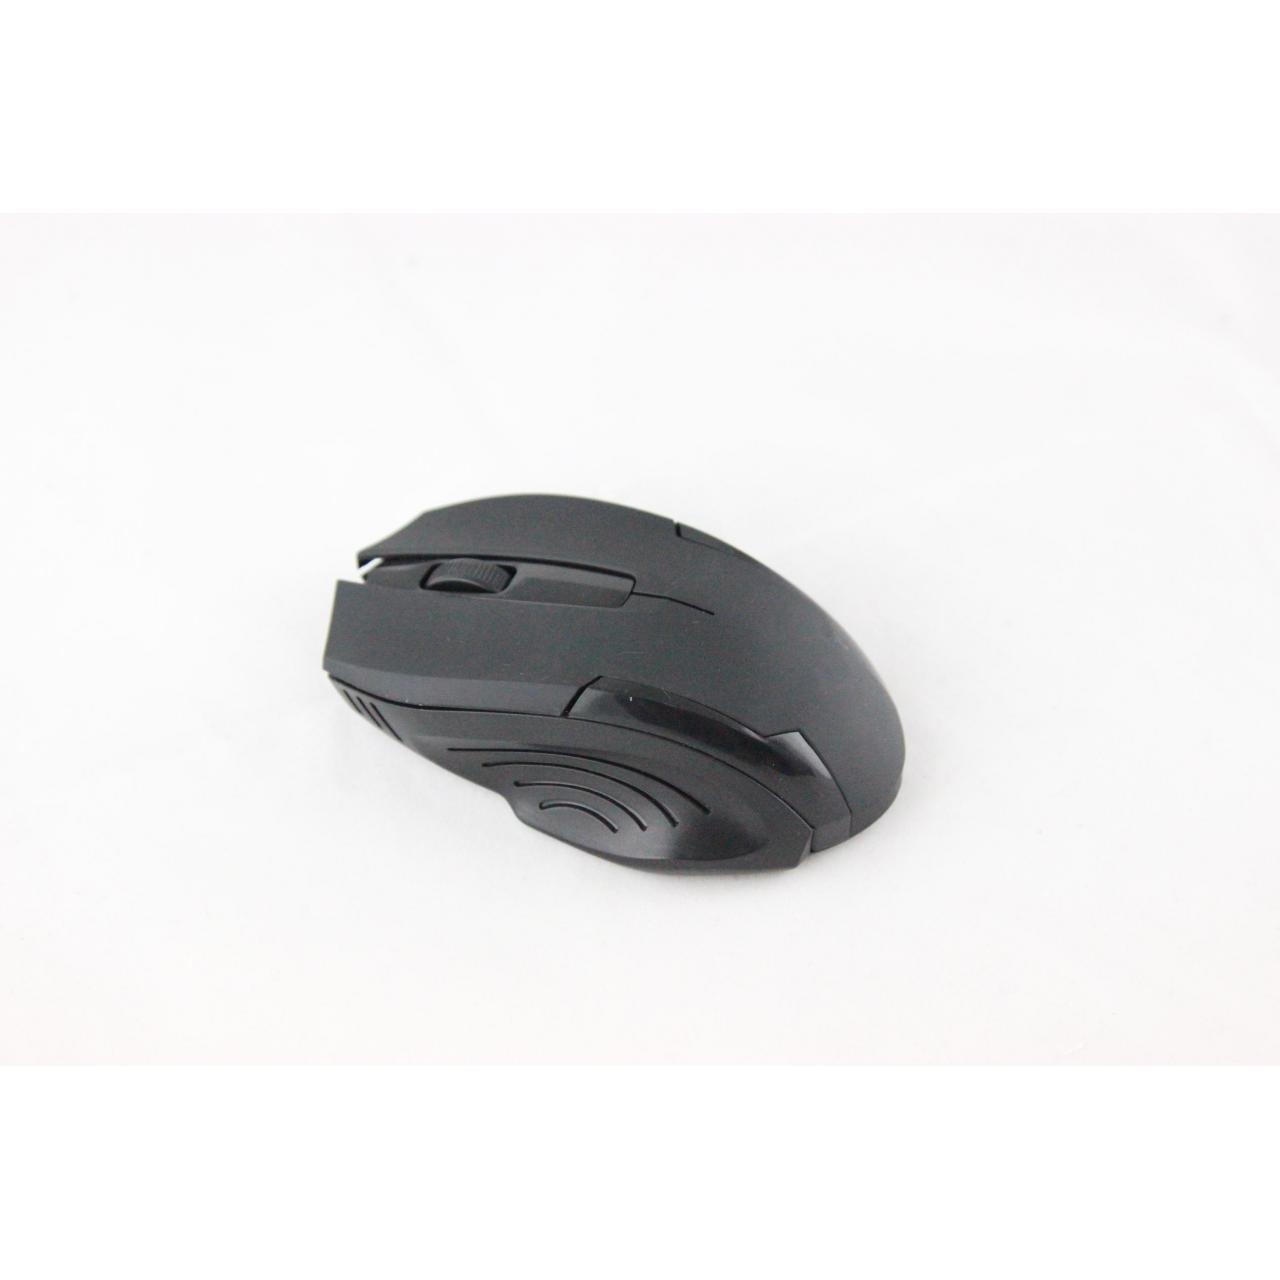 Wired Mouse M713